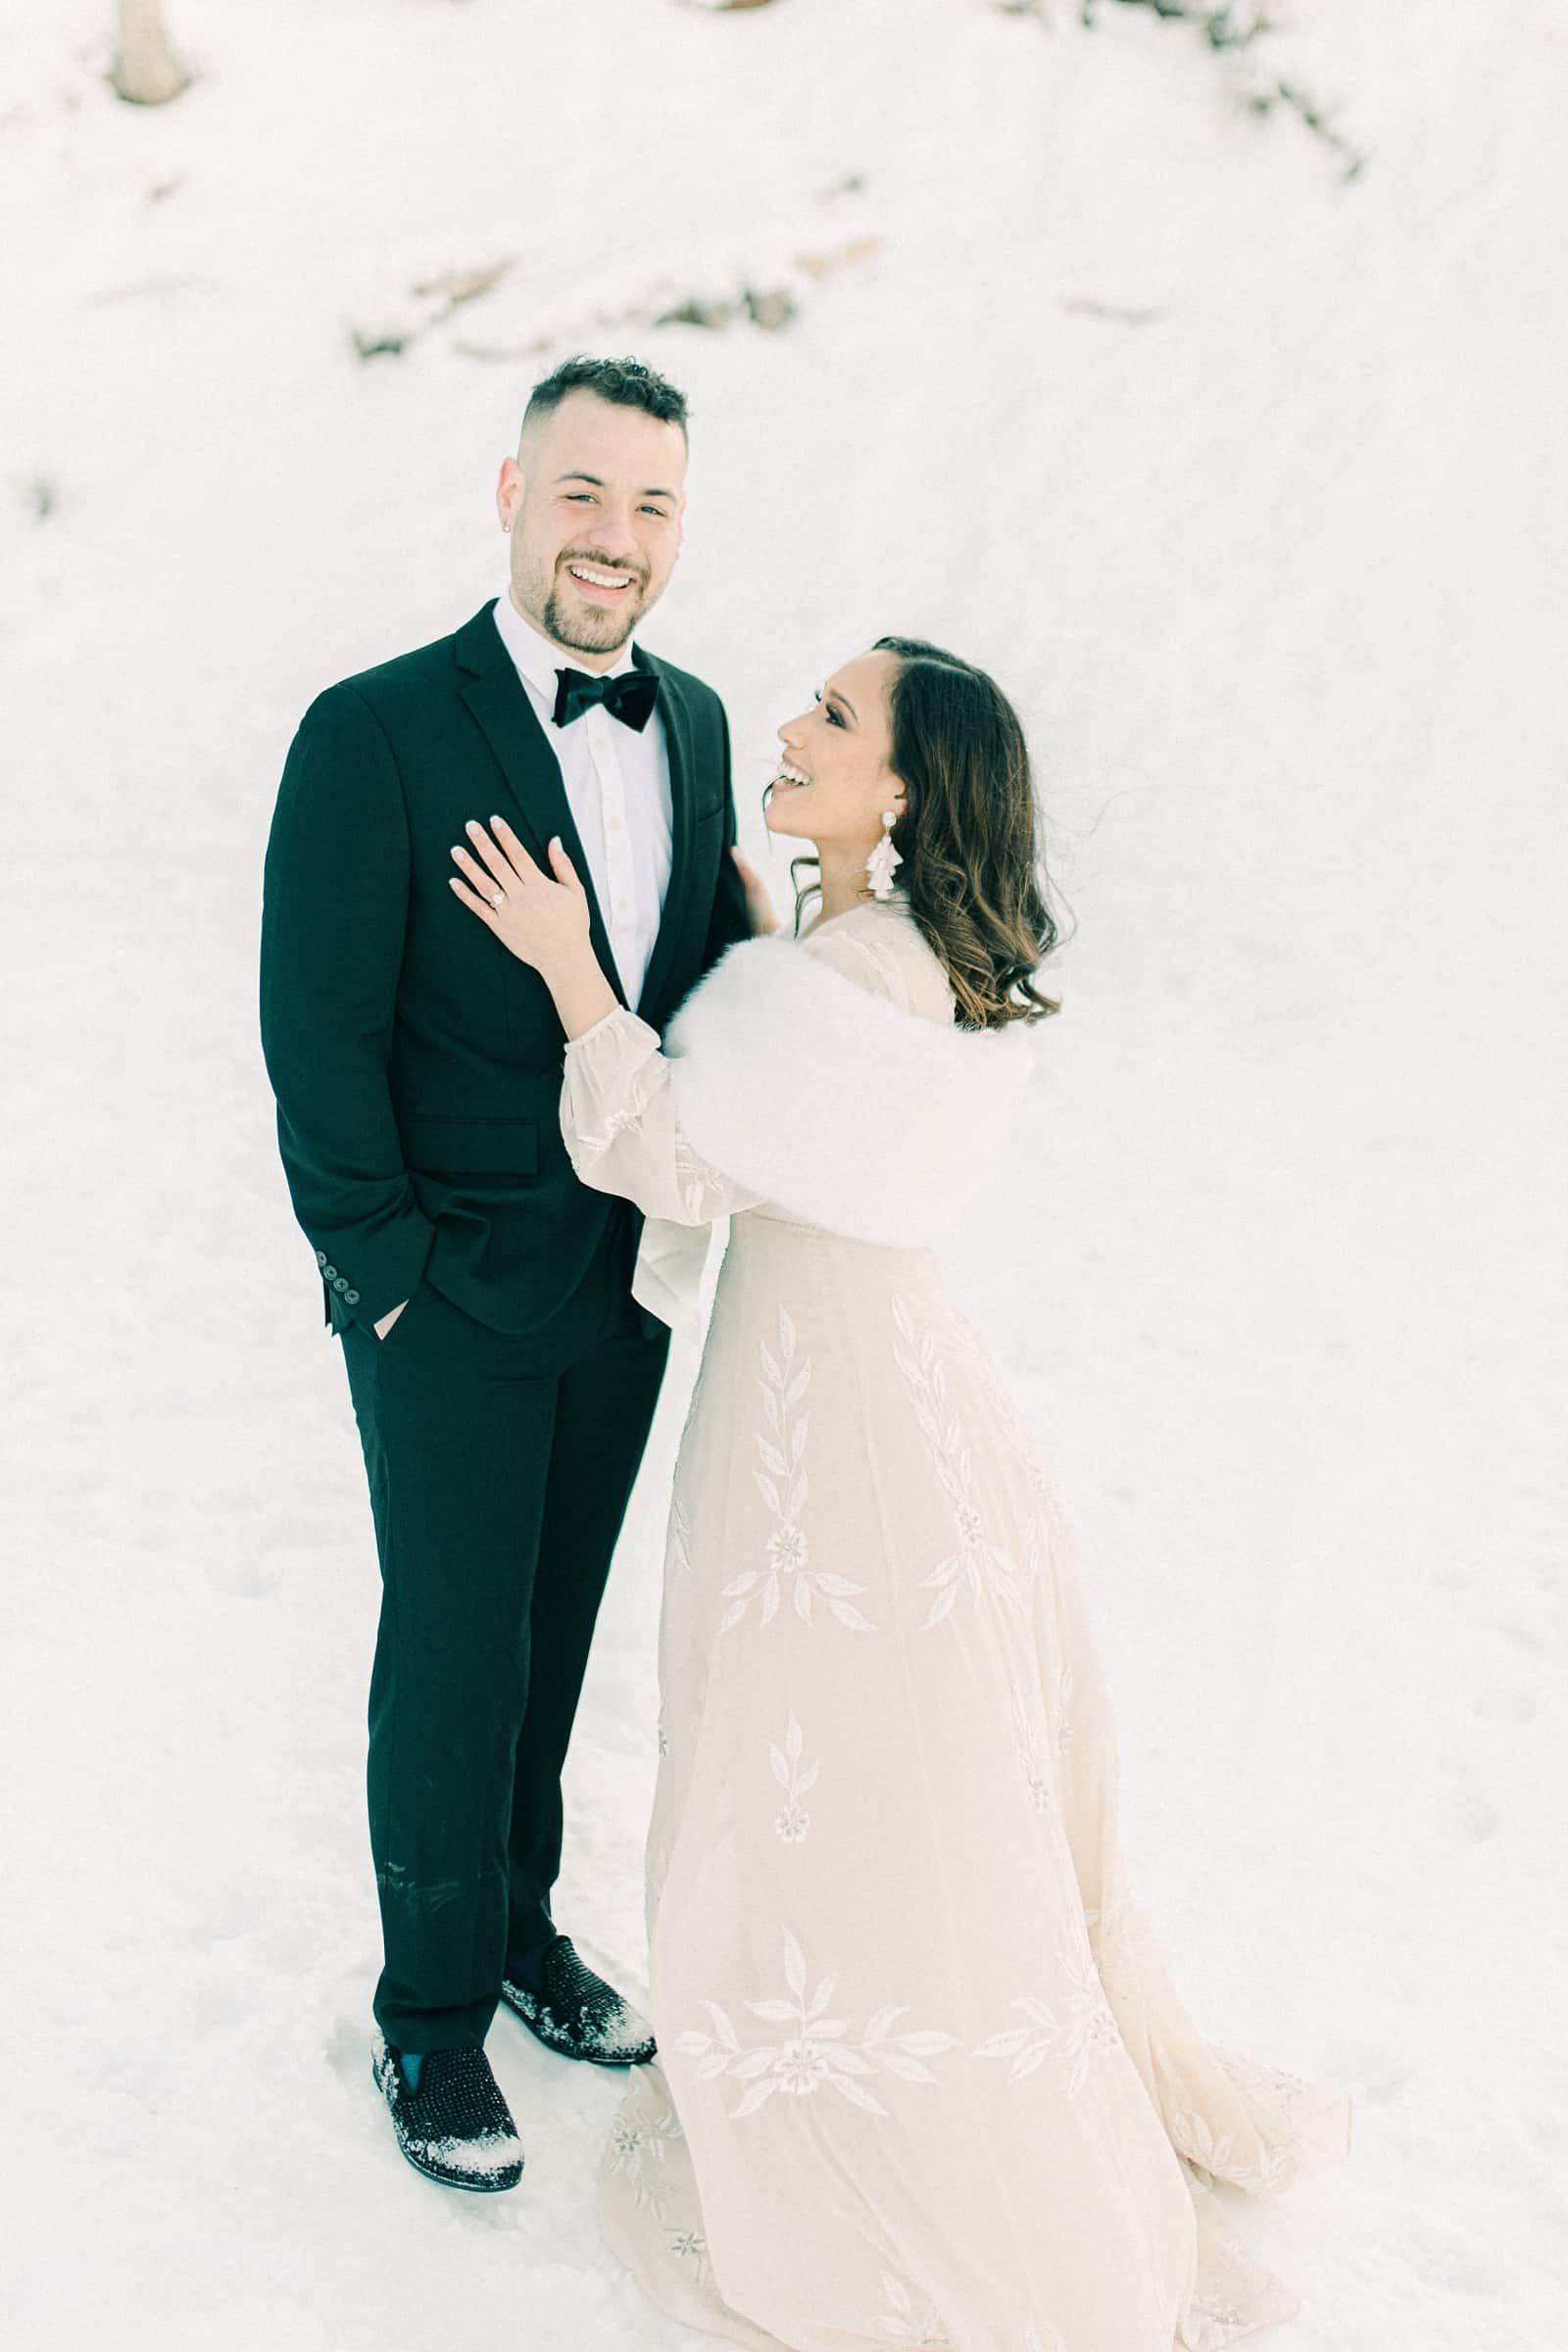 Bride and groom in snowy trees, winter wedding